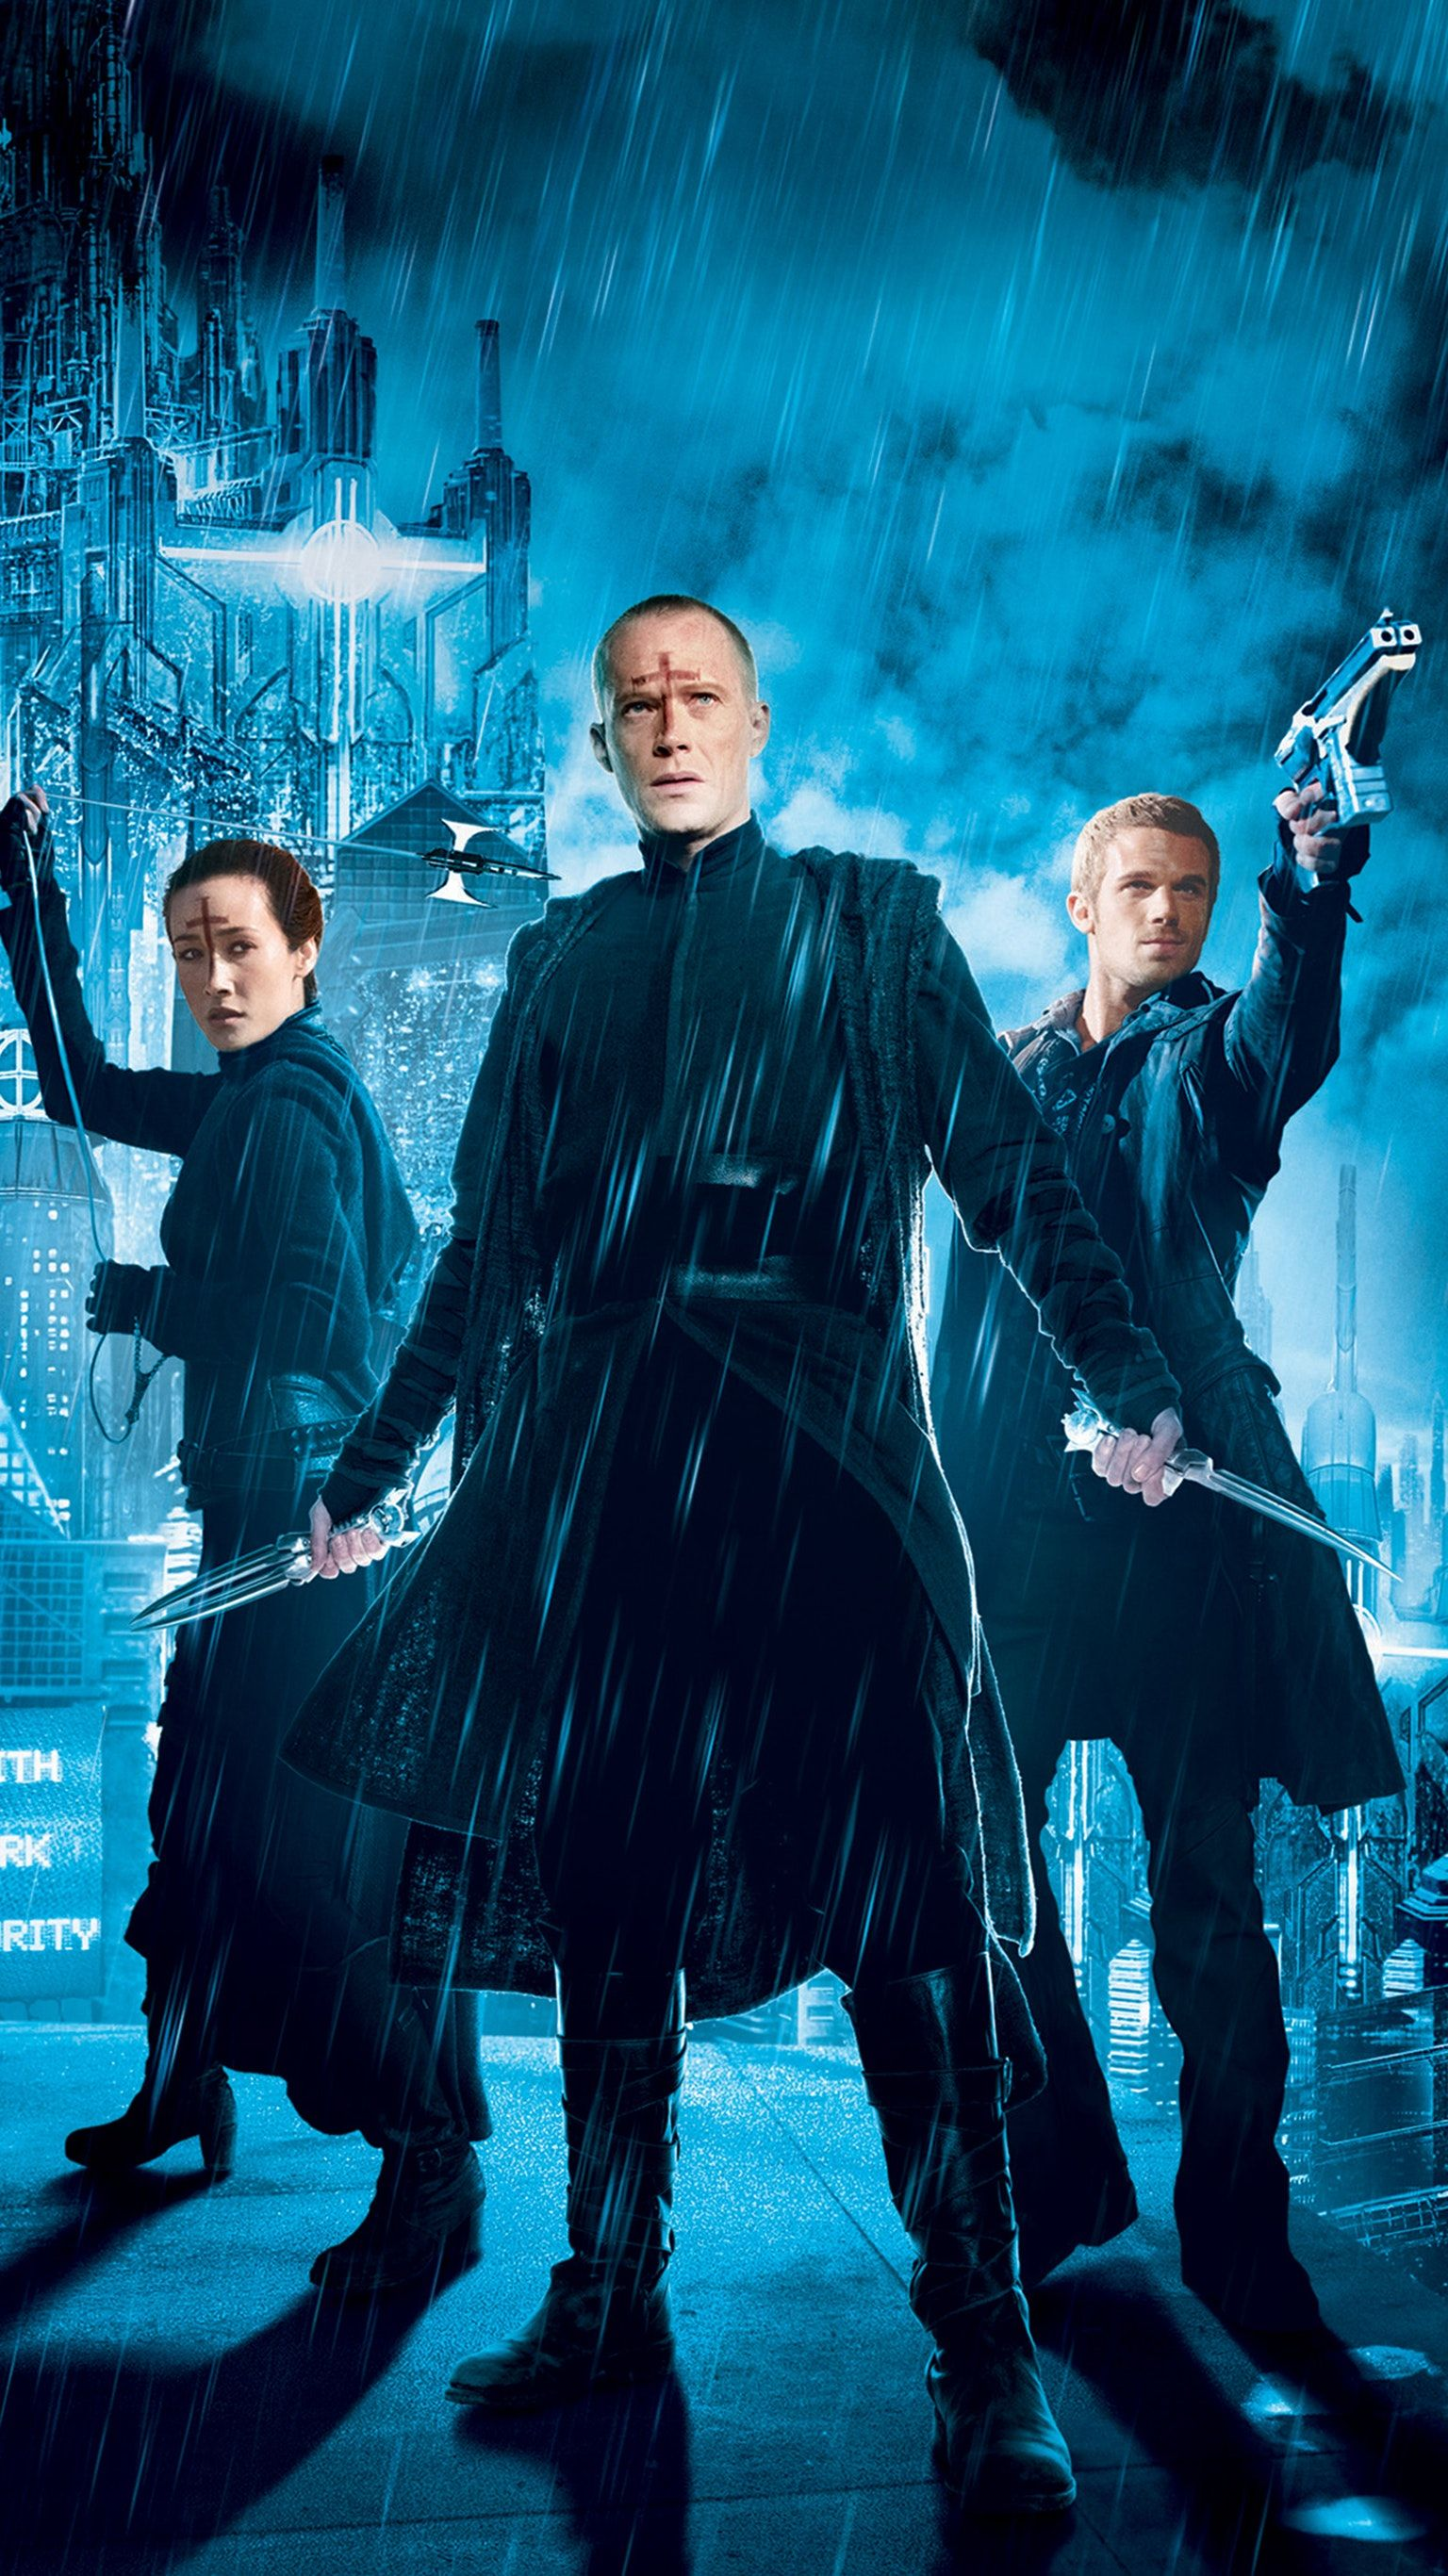 Priest 2011 Phone Wallpaper Moviemania Films Complets Film Complet Gratuit Film Streaming